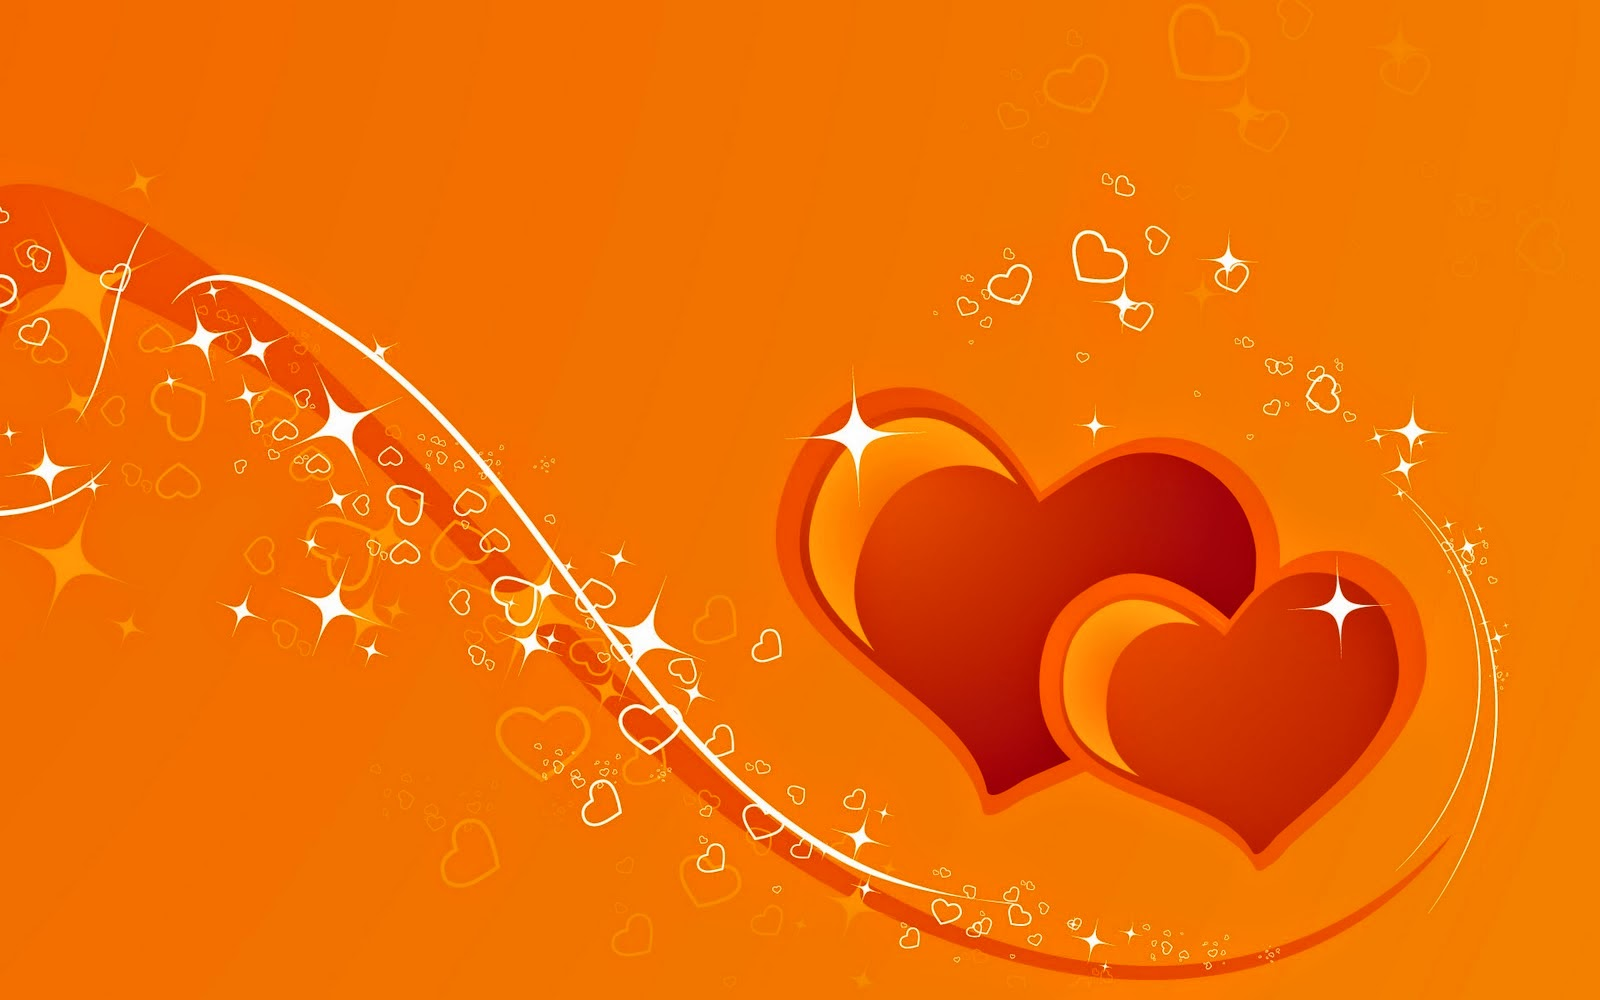 orange wallpaper love